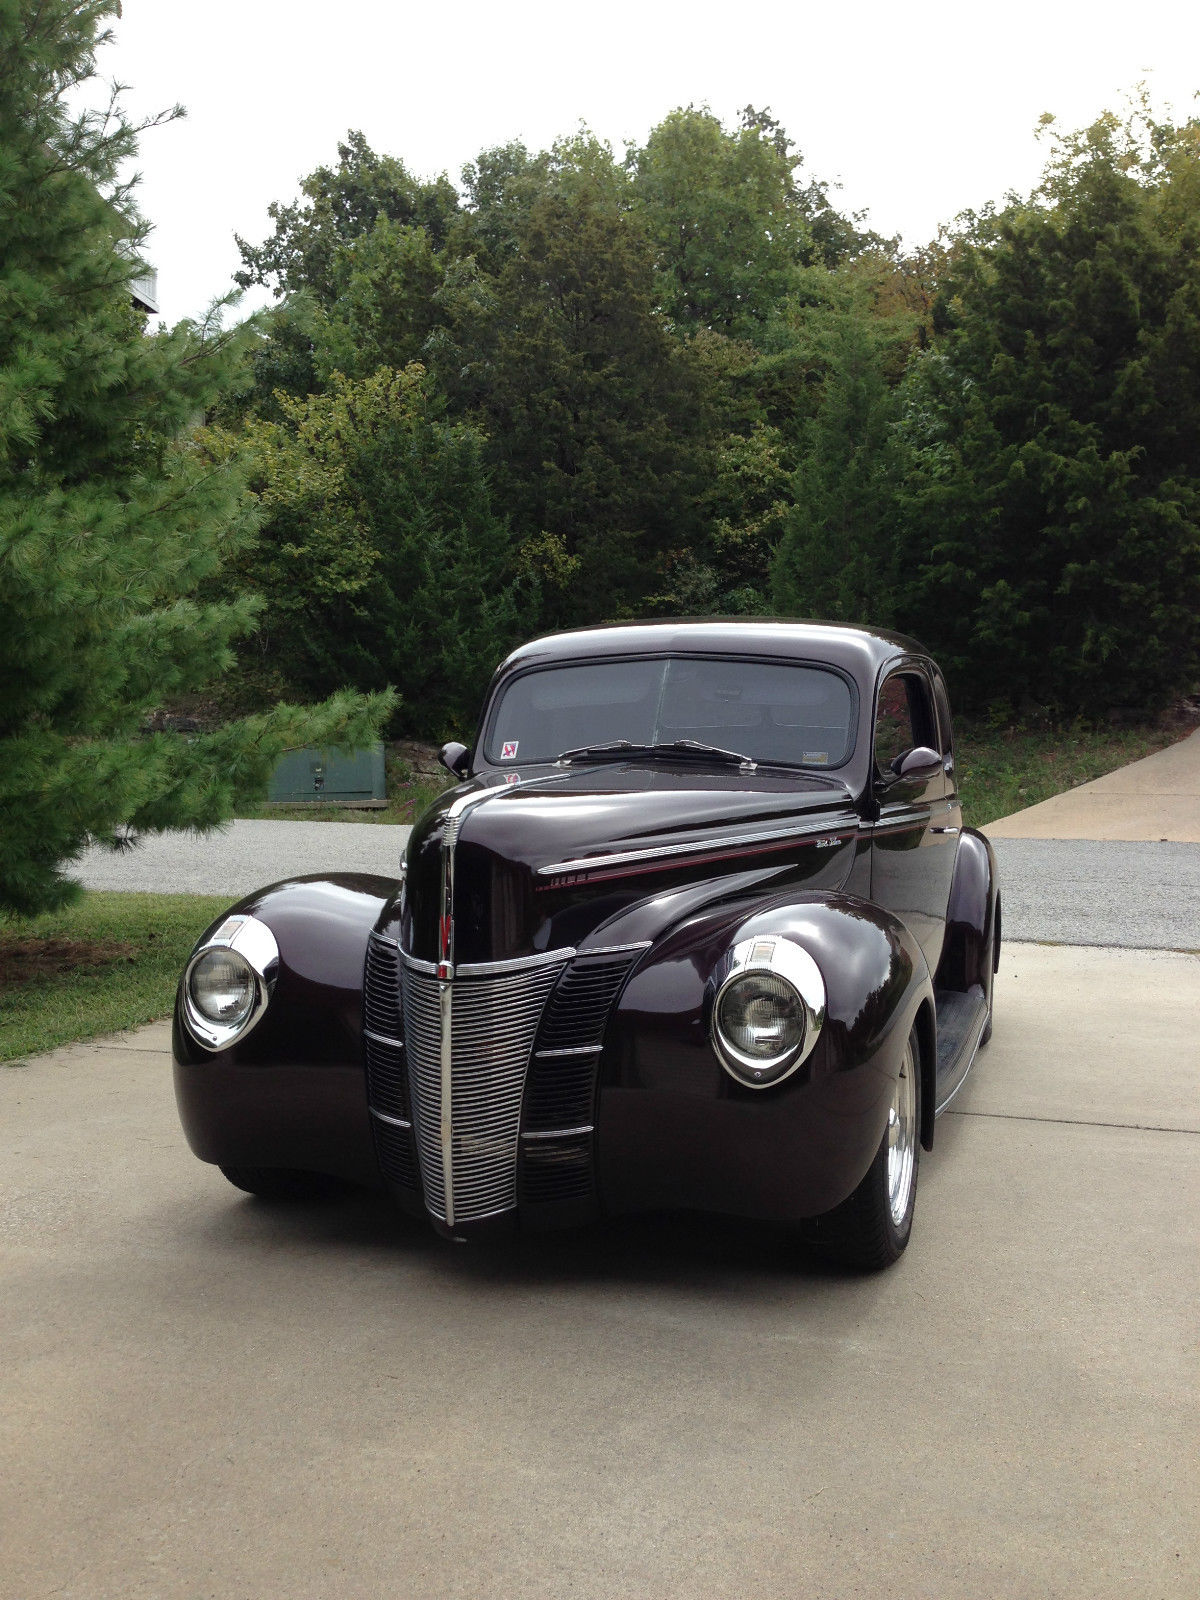 1940 Ford Coupe Deluxe 5 Window Opera Street Rod Fresh